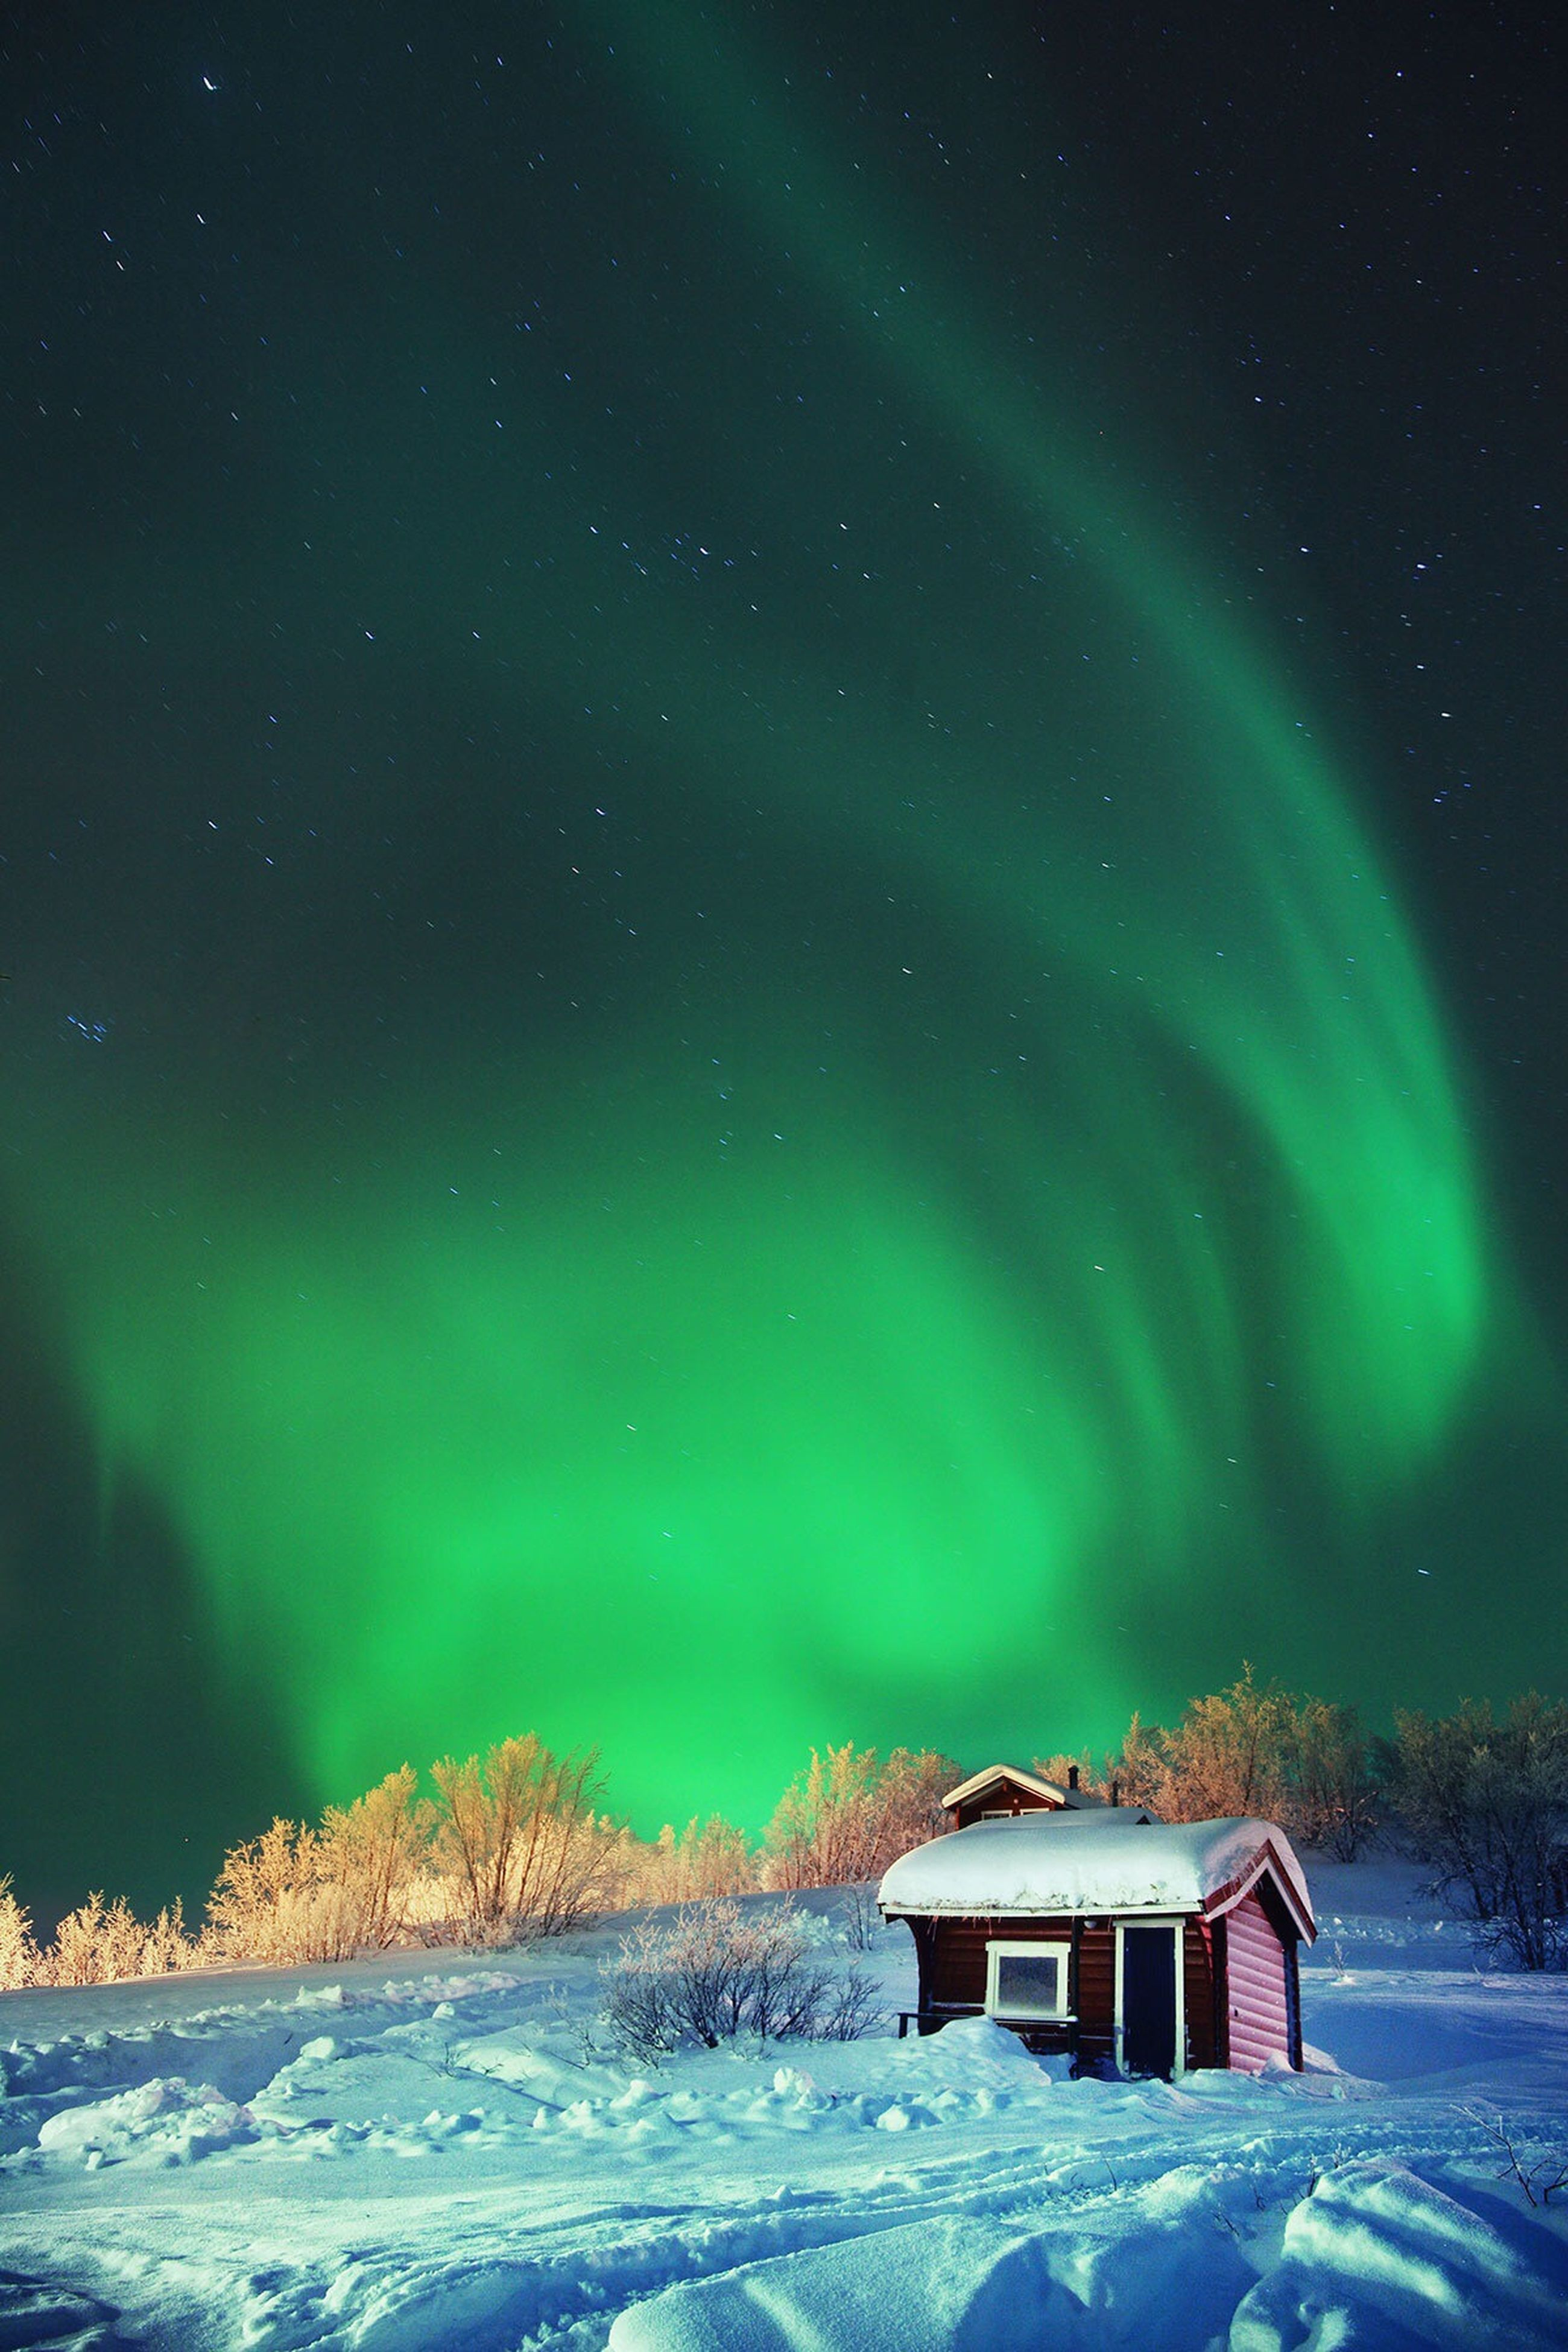 night, star - space, built structure, house, architecture, snow, sky, building exterior, scenics, tranquility, winter, tranquil scene, beauty in nature, nature, astronomy, star field, landscape, blue, low angle view, tree